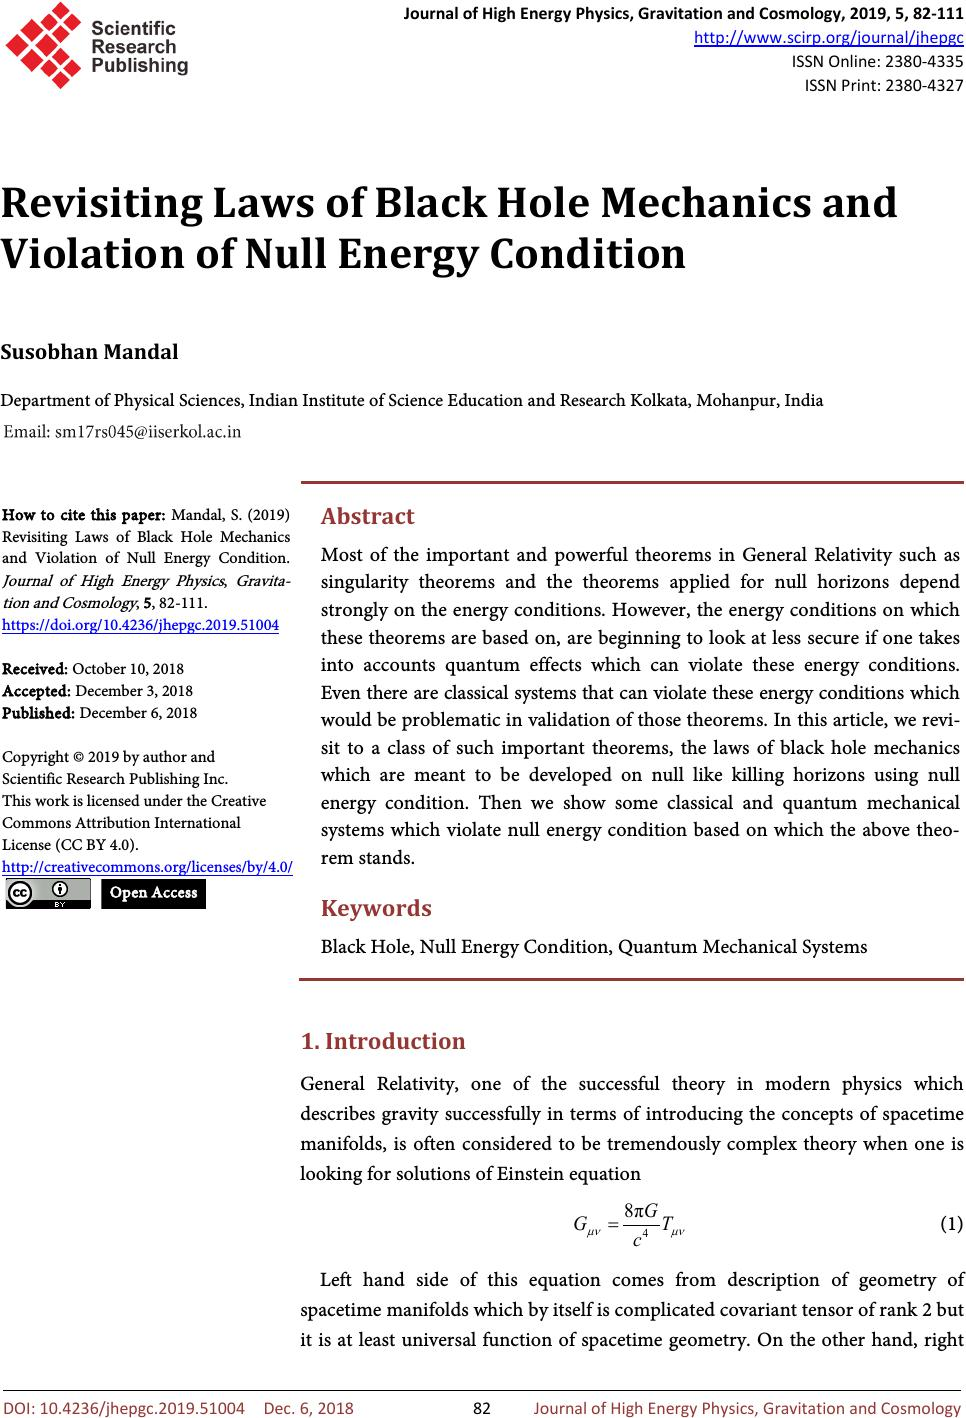 Revisiting Laws of Black Hole Mechanics and Violation of Null Energy